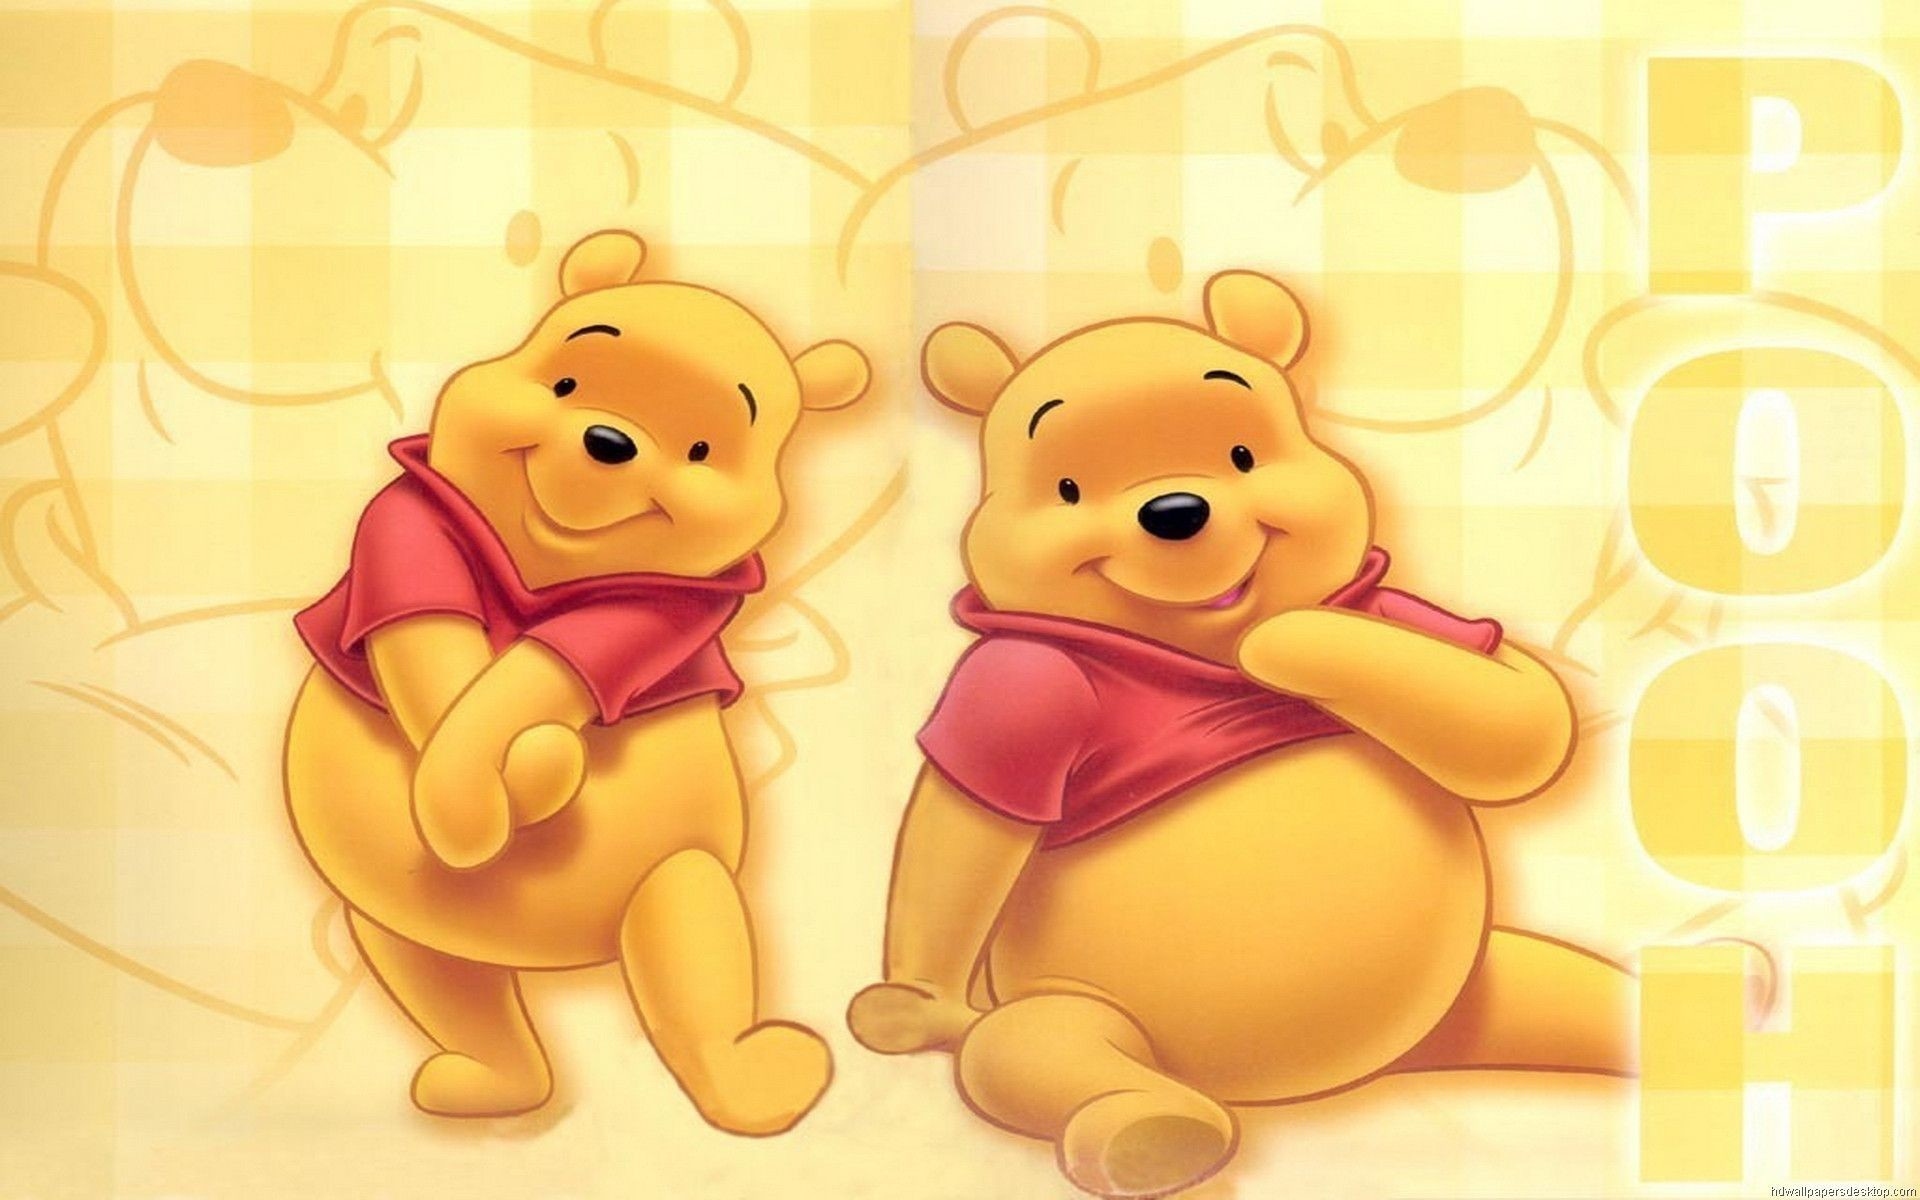 Winnie the pooh christmas wallpaper 46 images 1920x1200 pooh bear backgrounds wallpaper voltagebd Gallery